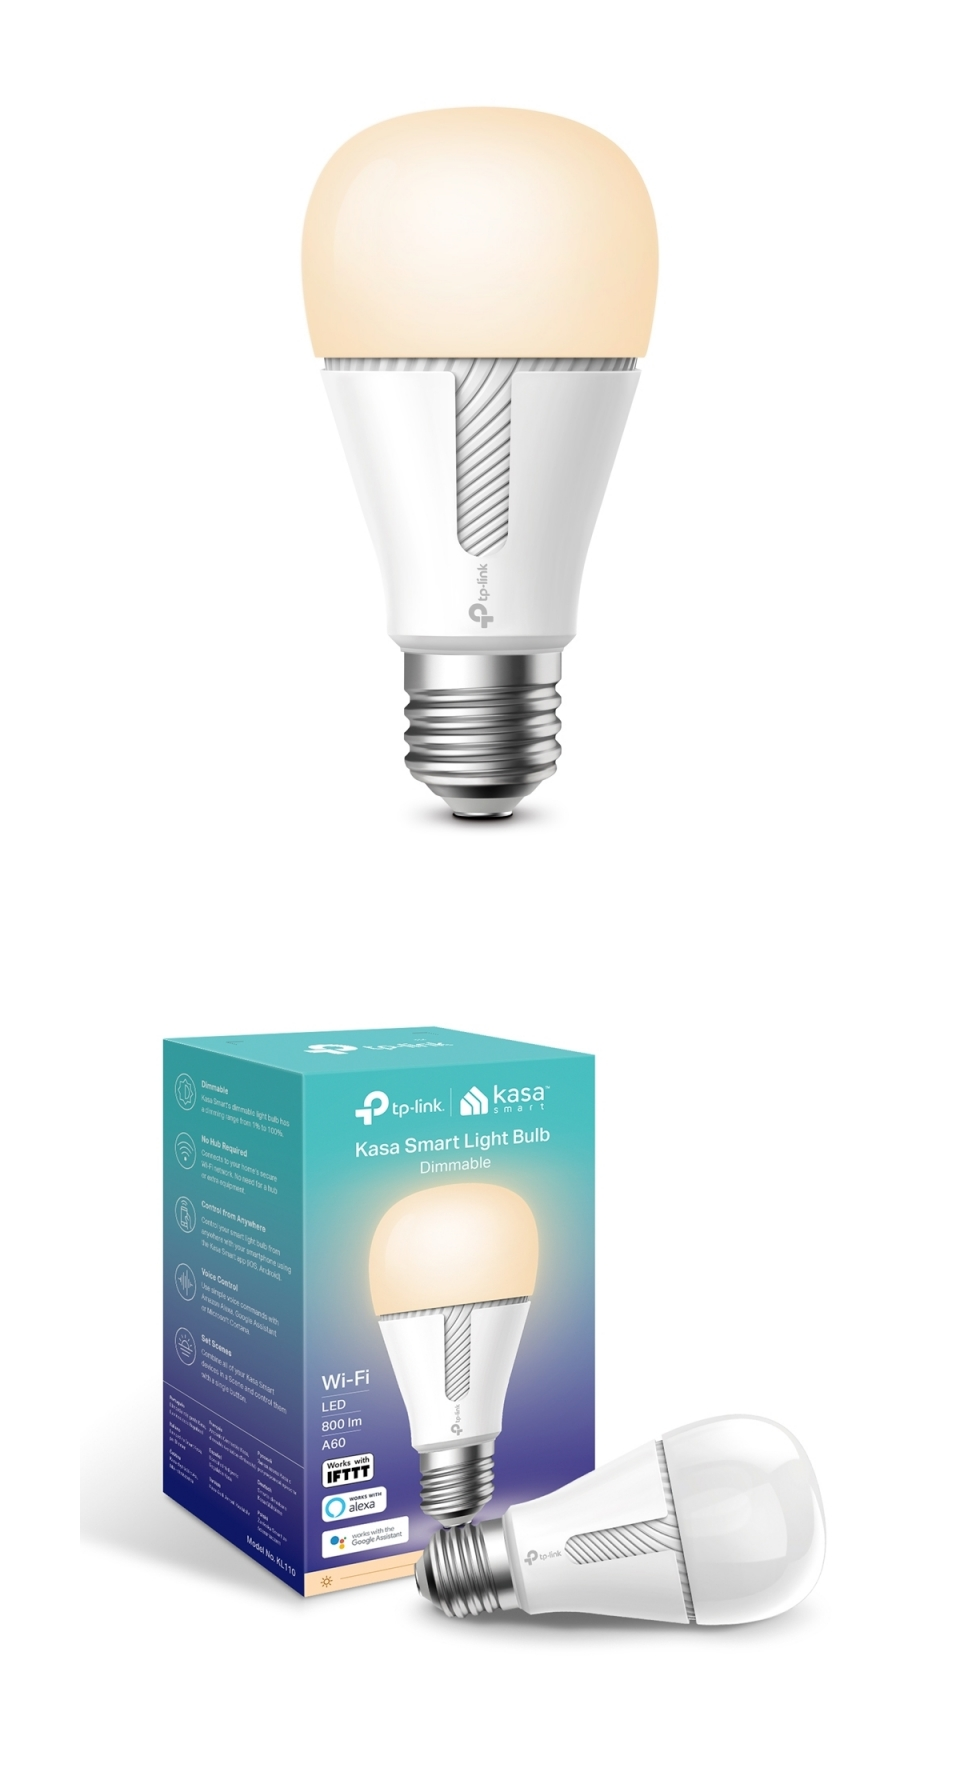 TP-Link KL110 Dimmable Smart LED Bulb product